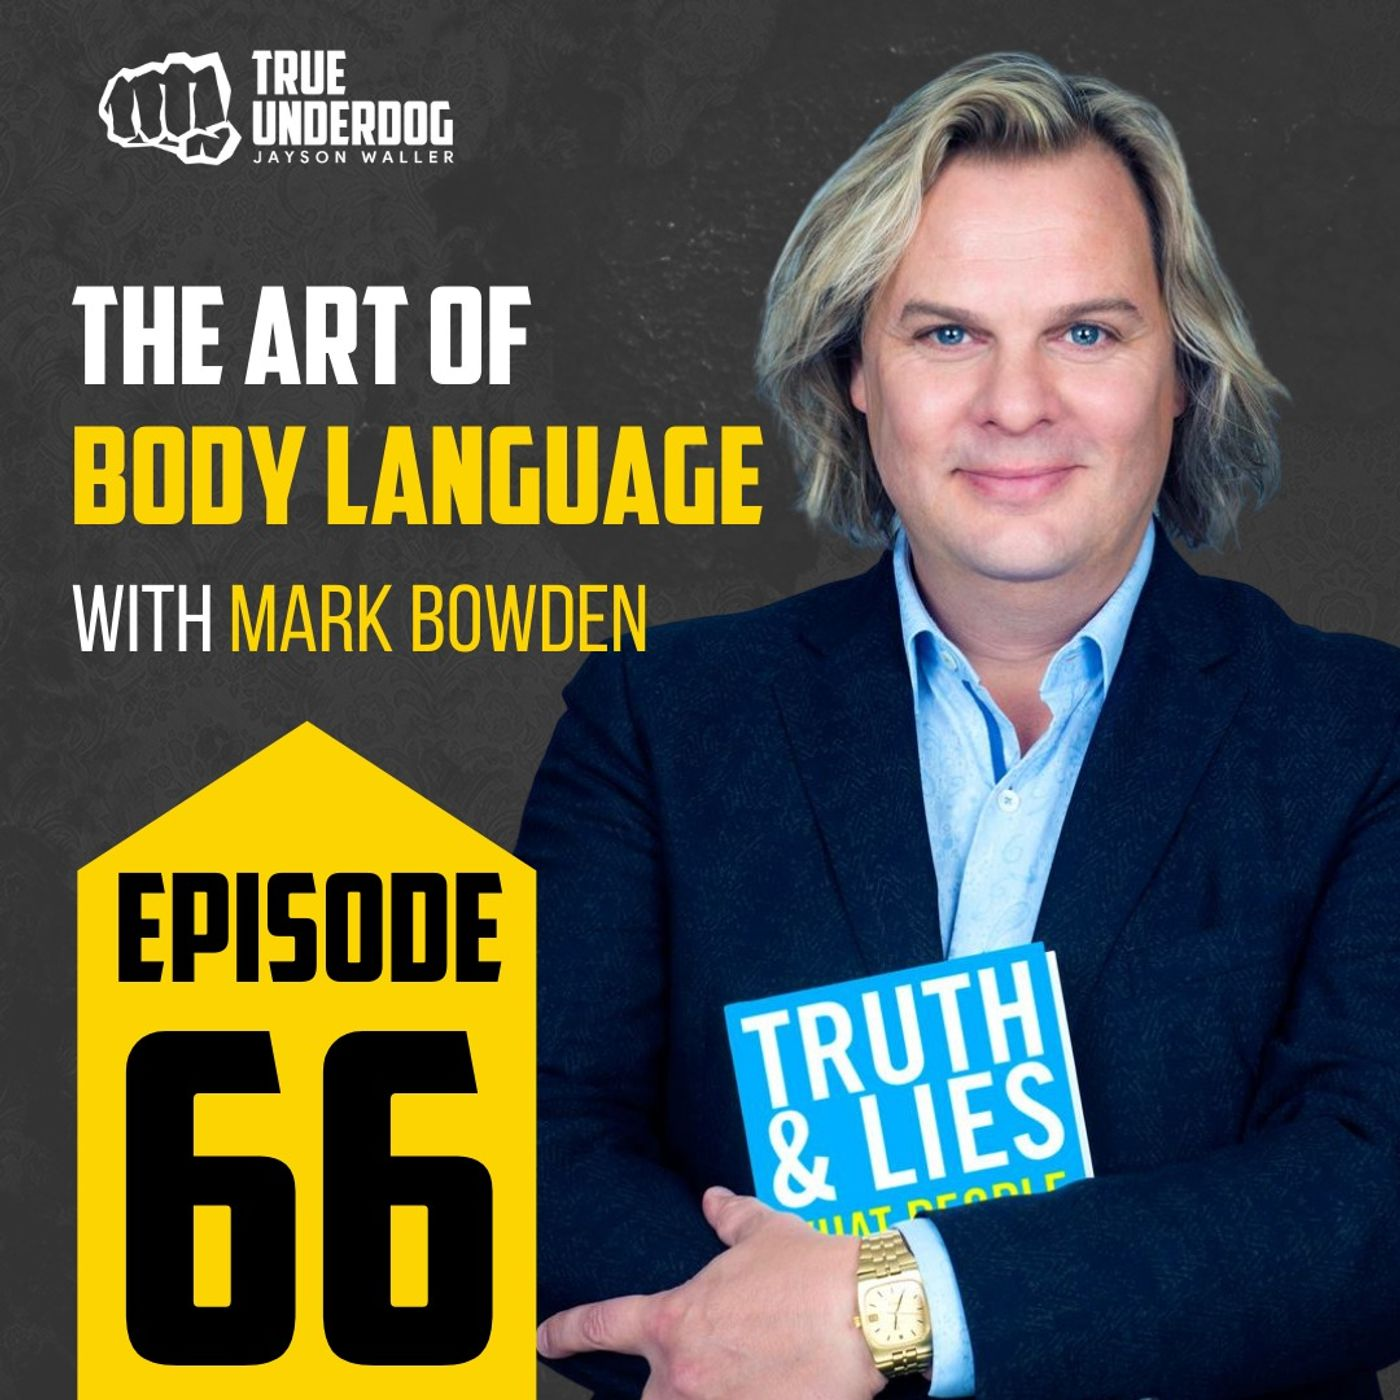 #66: The Art of Body Language with Mark Bowden